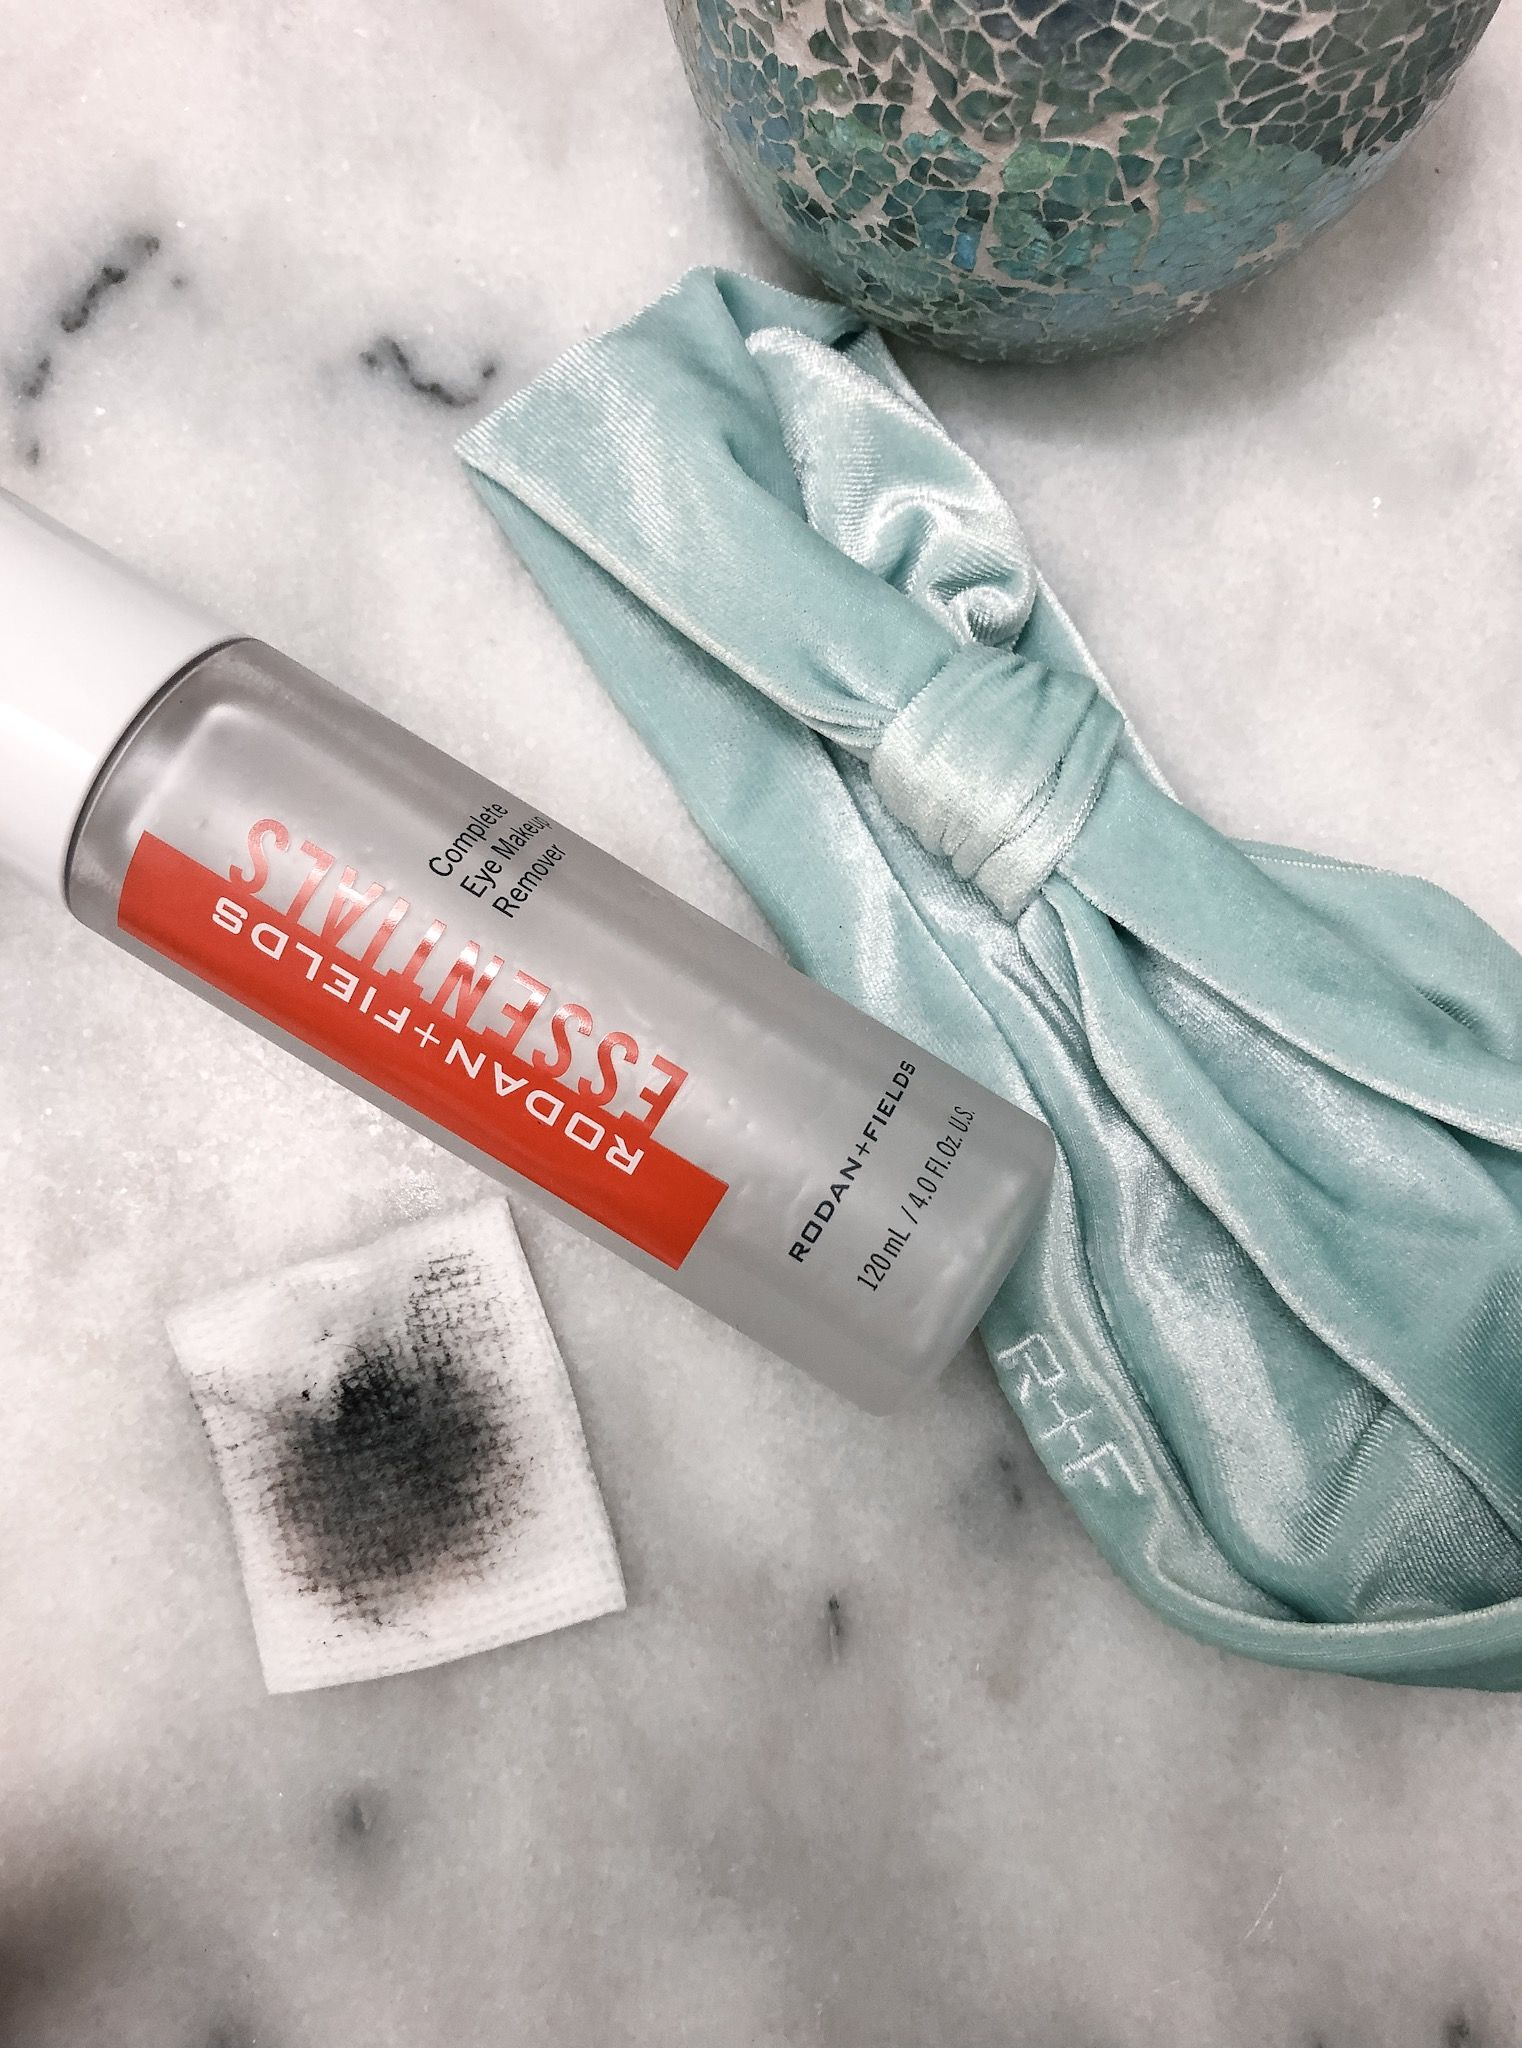 Pin by Alexandria Williams on Rodan and Fields in 2020